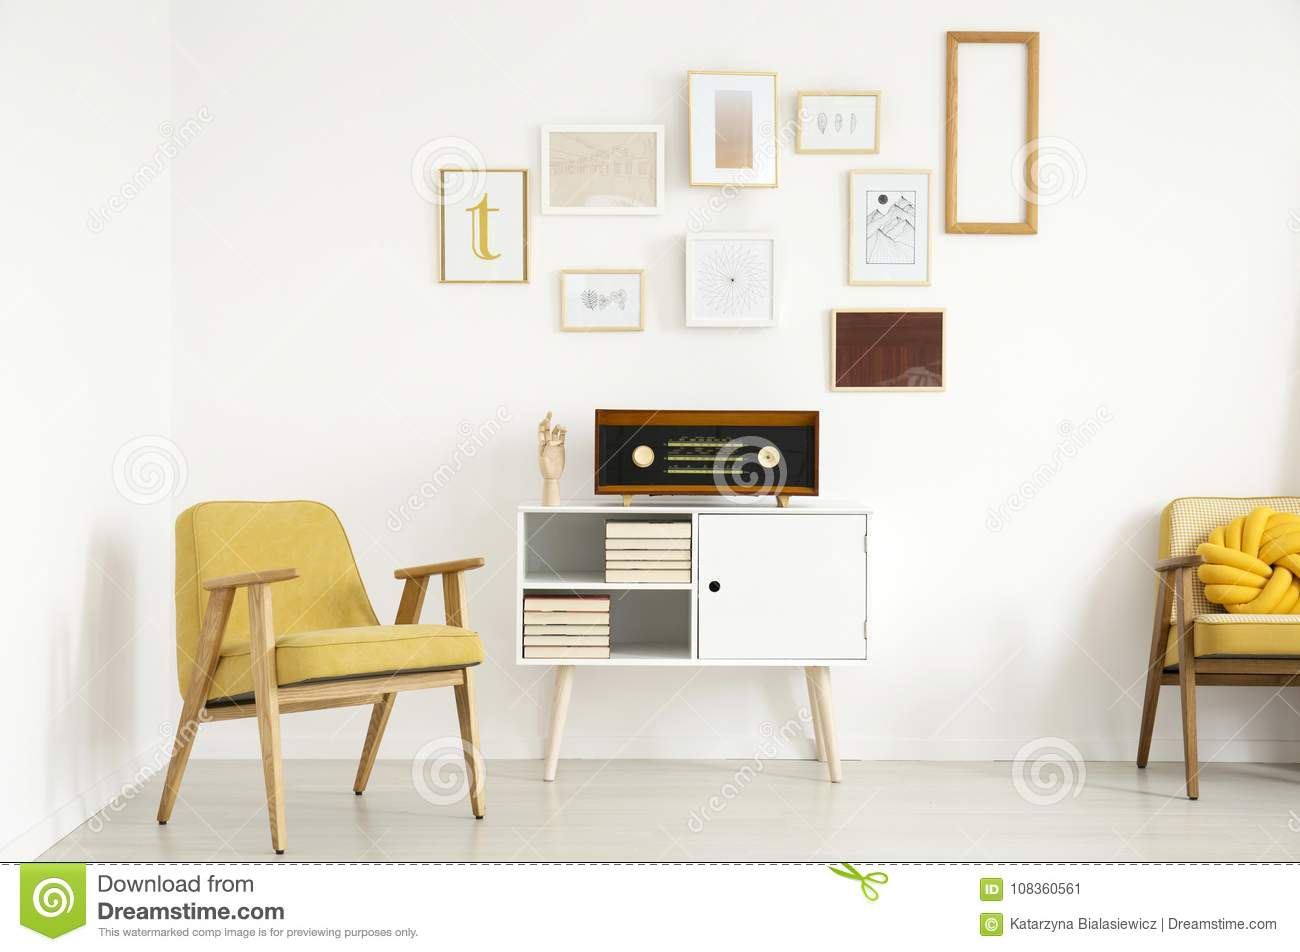 Yellow warm living room stock image. Image of armchair - 108360561